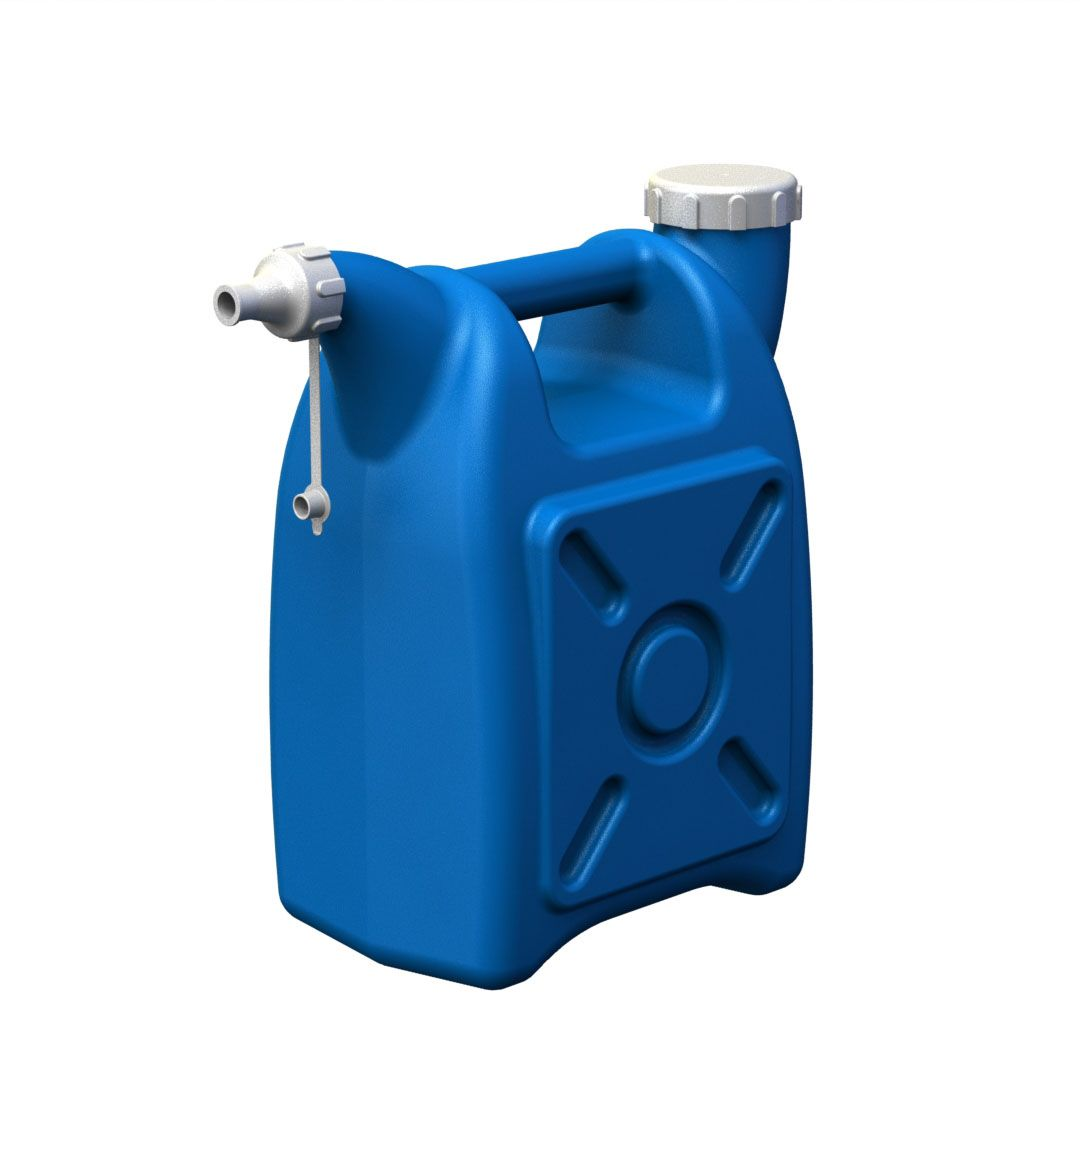 Brumex / Watering cans for home and garden, 15L, 20L